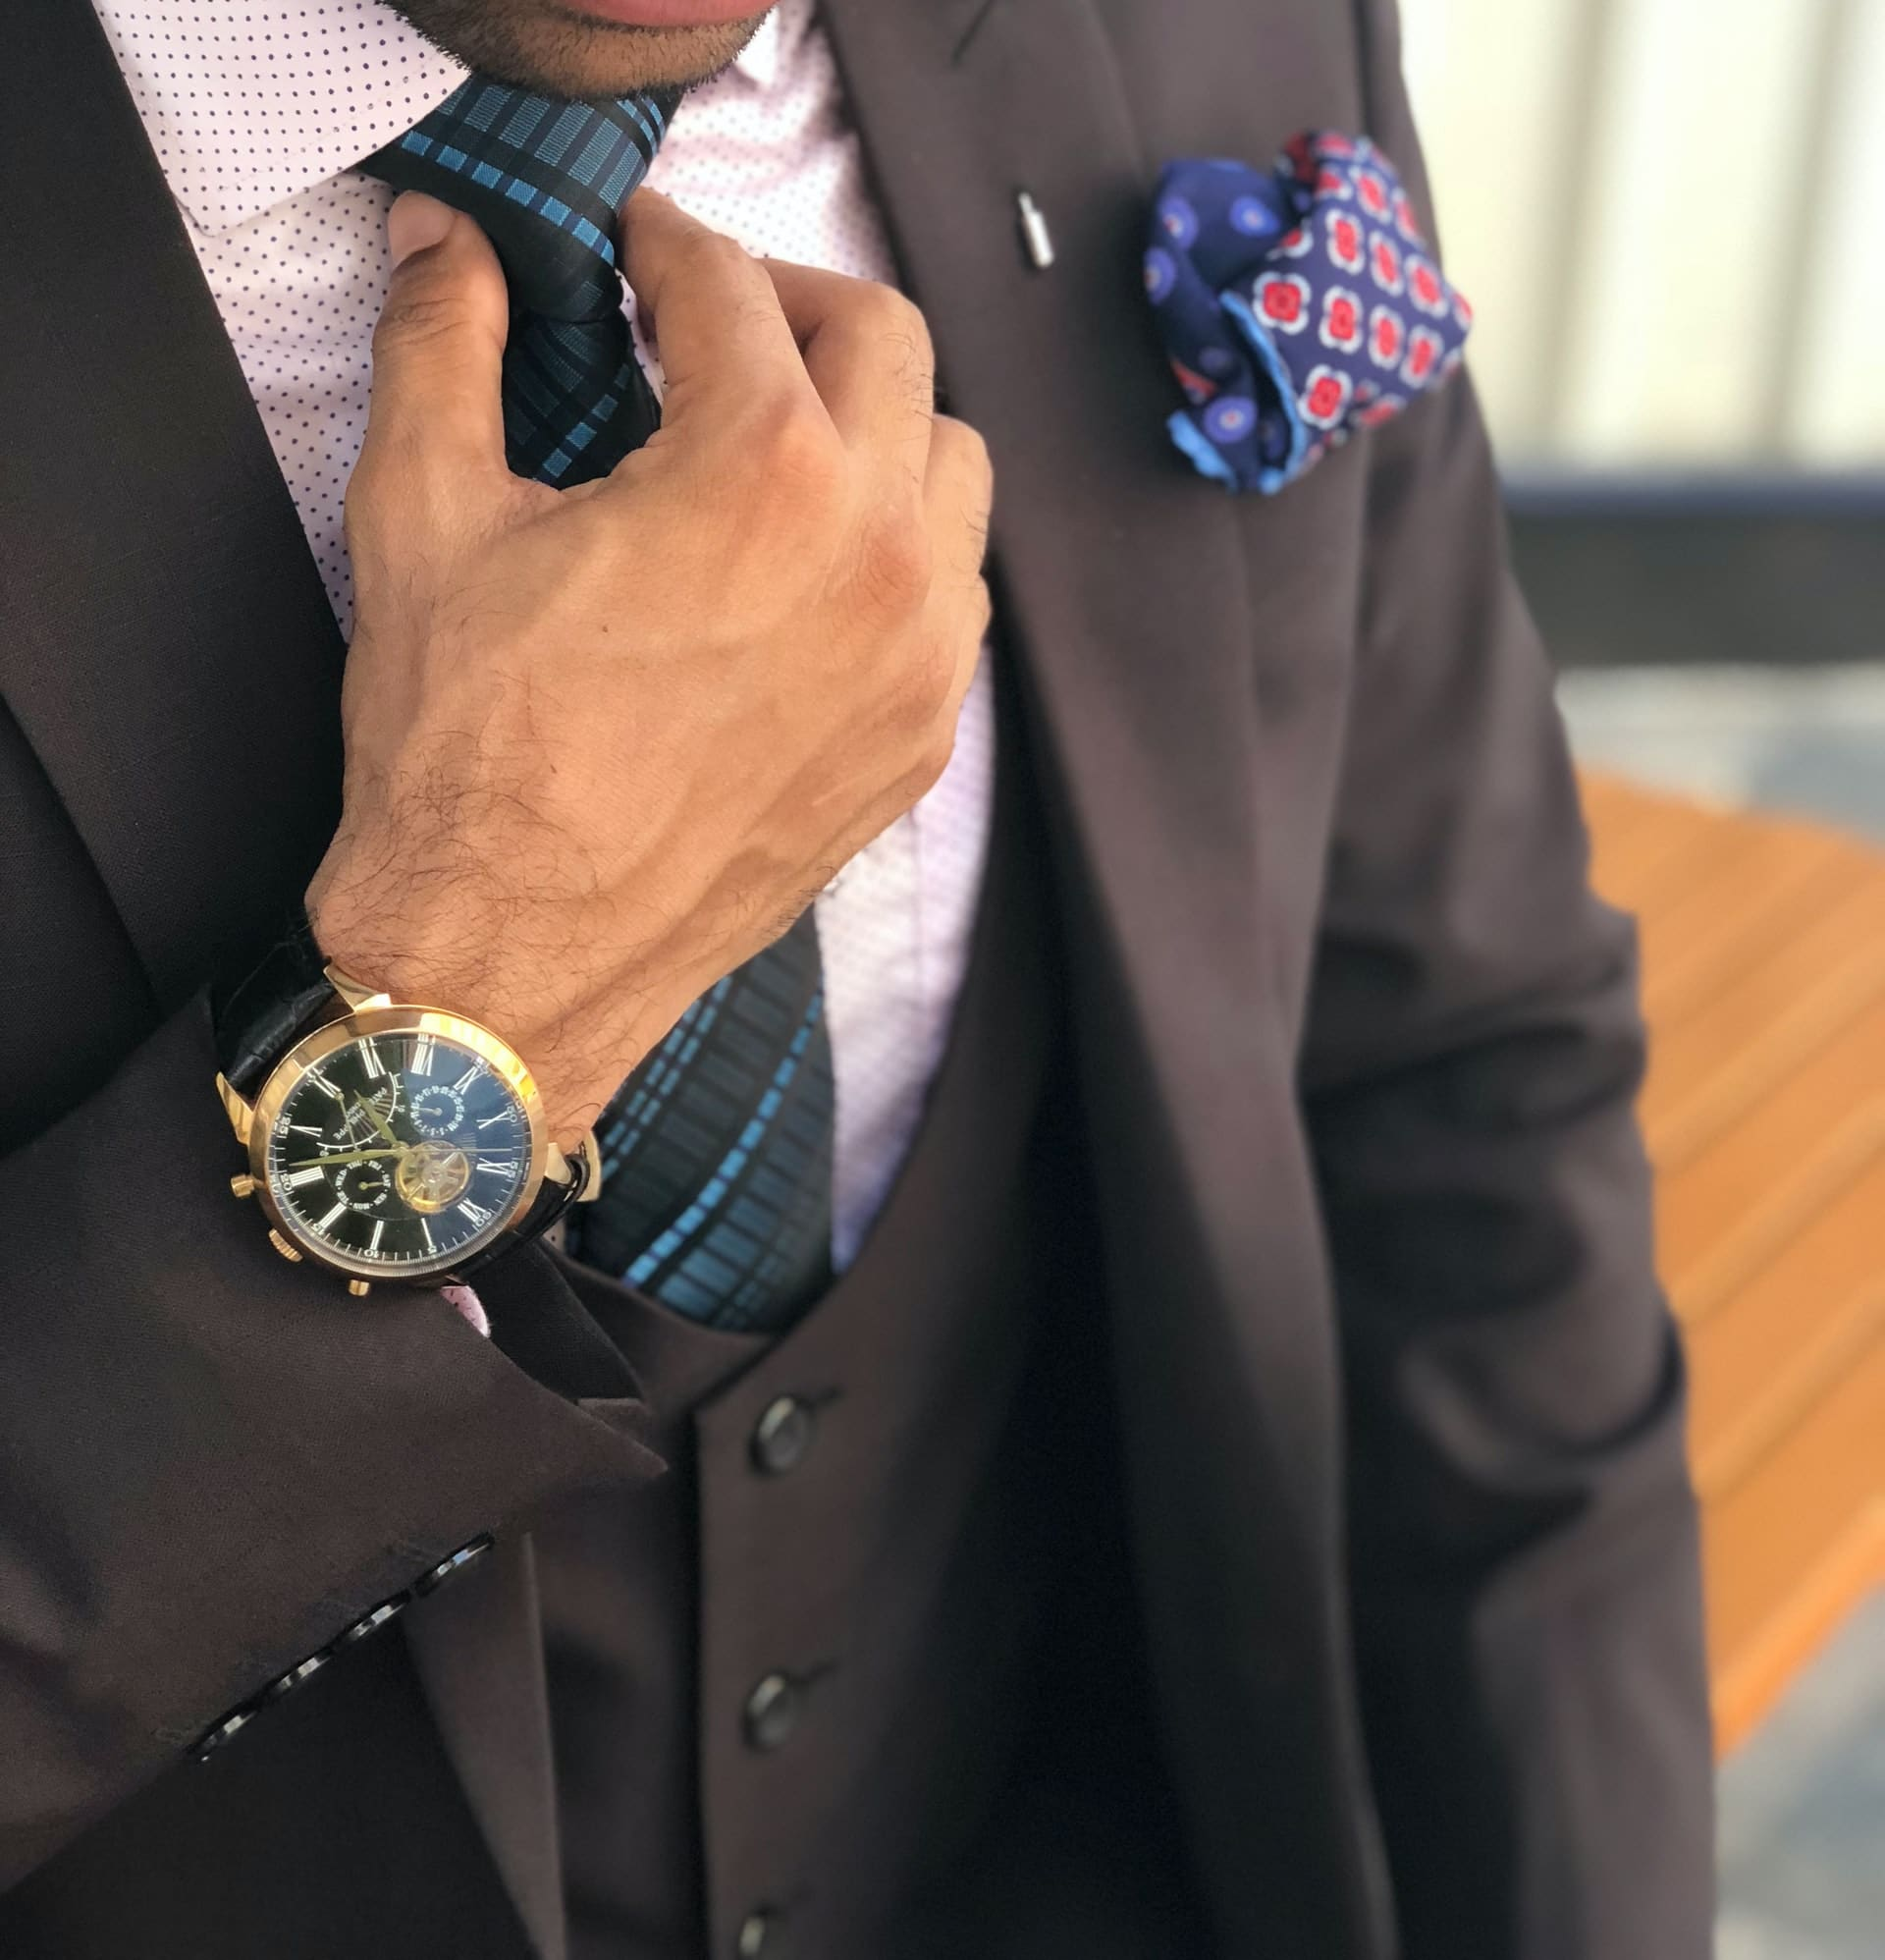 Men's Luxury Watches You Should Know About